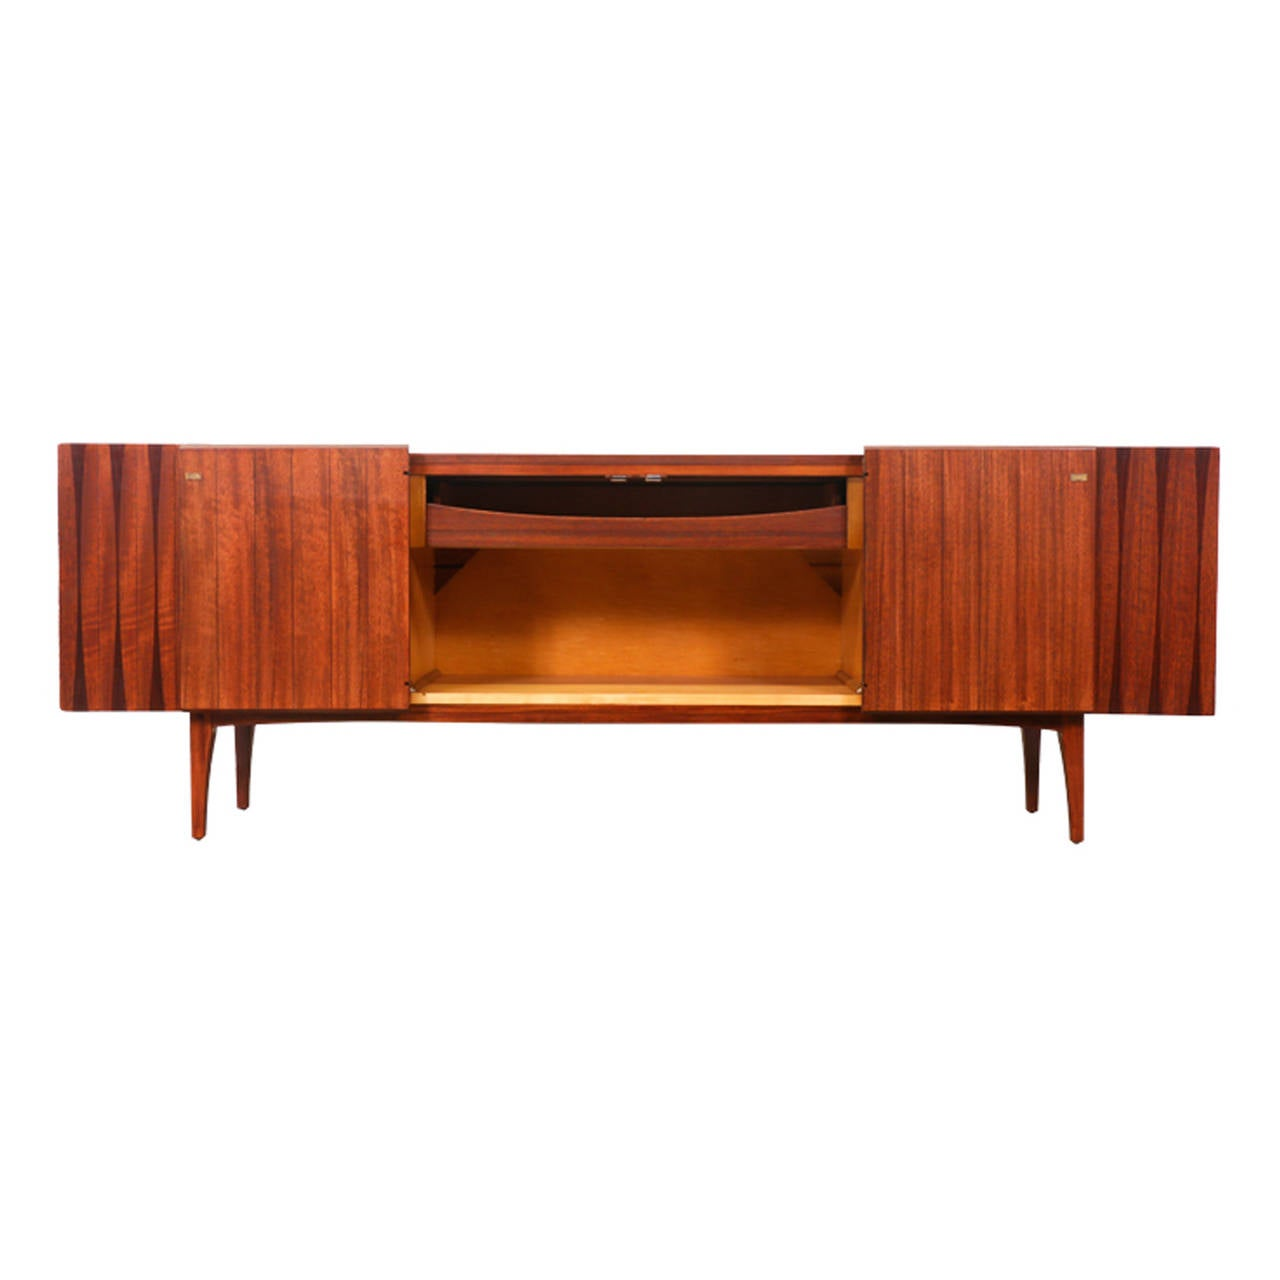 Mid Century Credenza With Rosewood Inlaid By Lane At 1stdibs